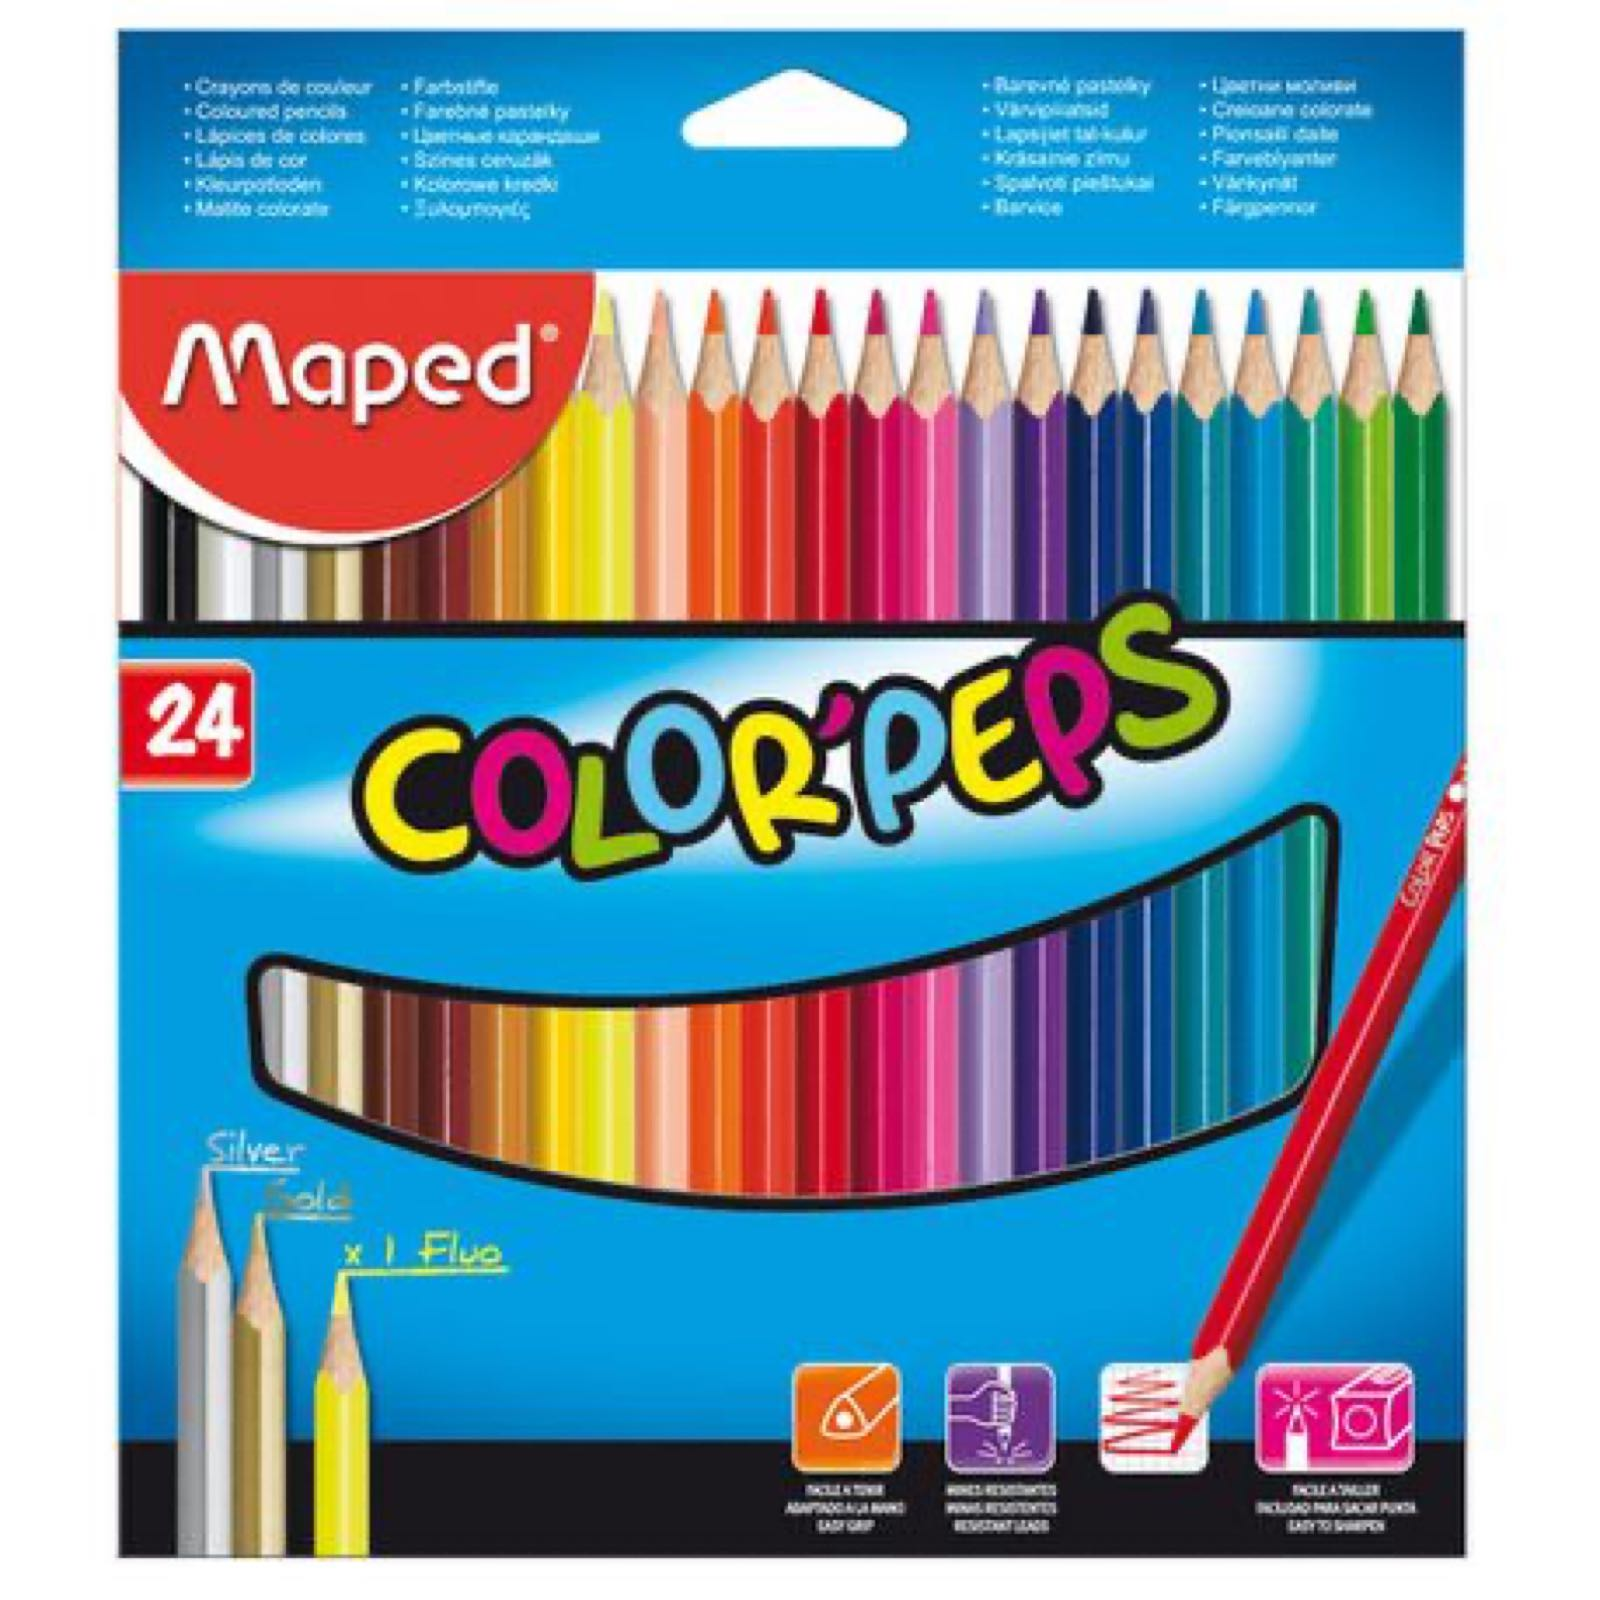 Coloured Pencils 24 Pack - COLORPEPS